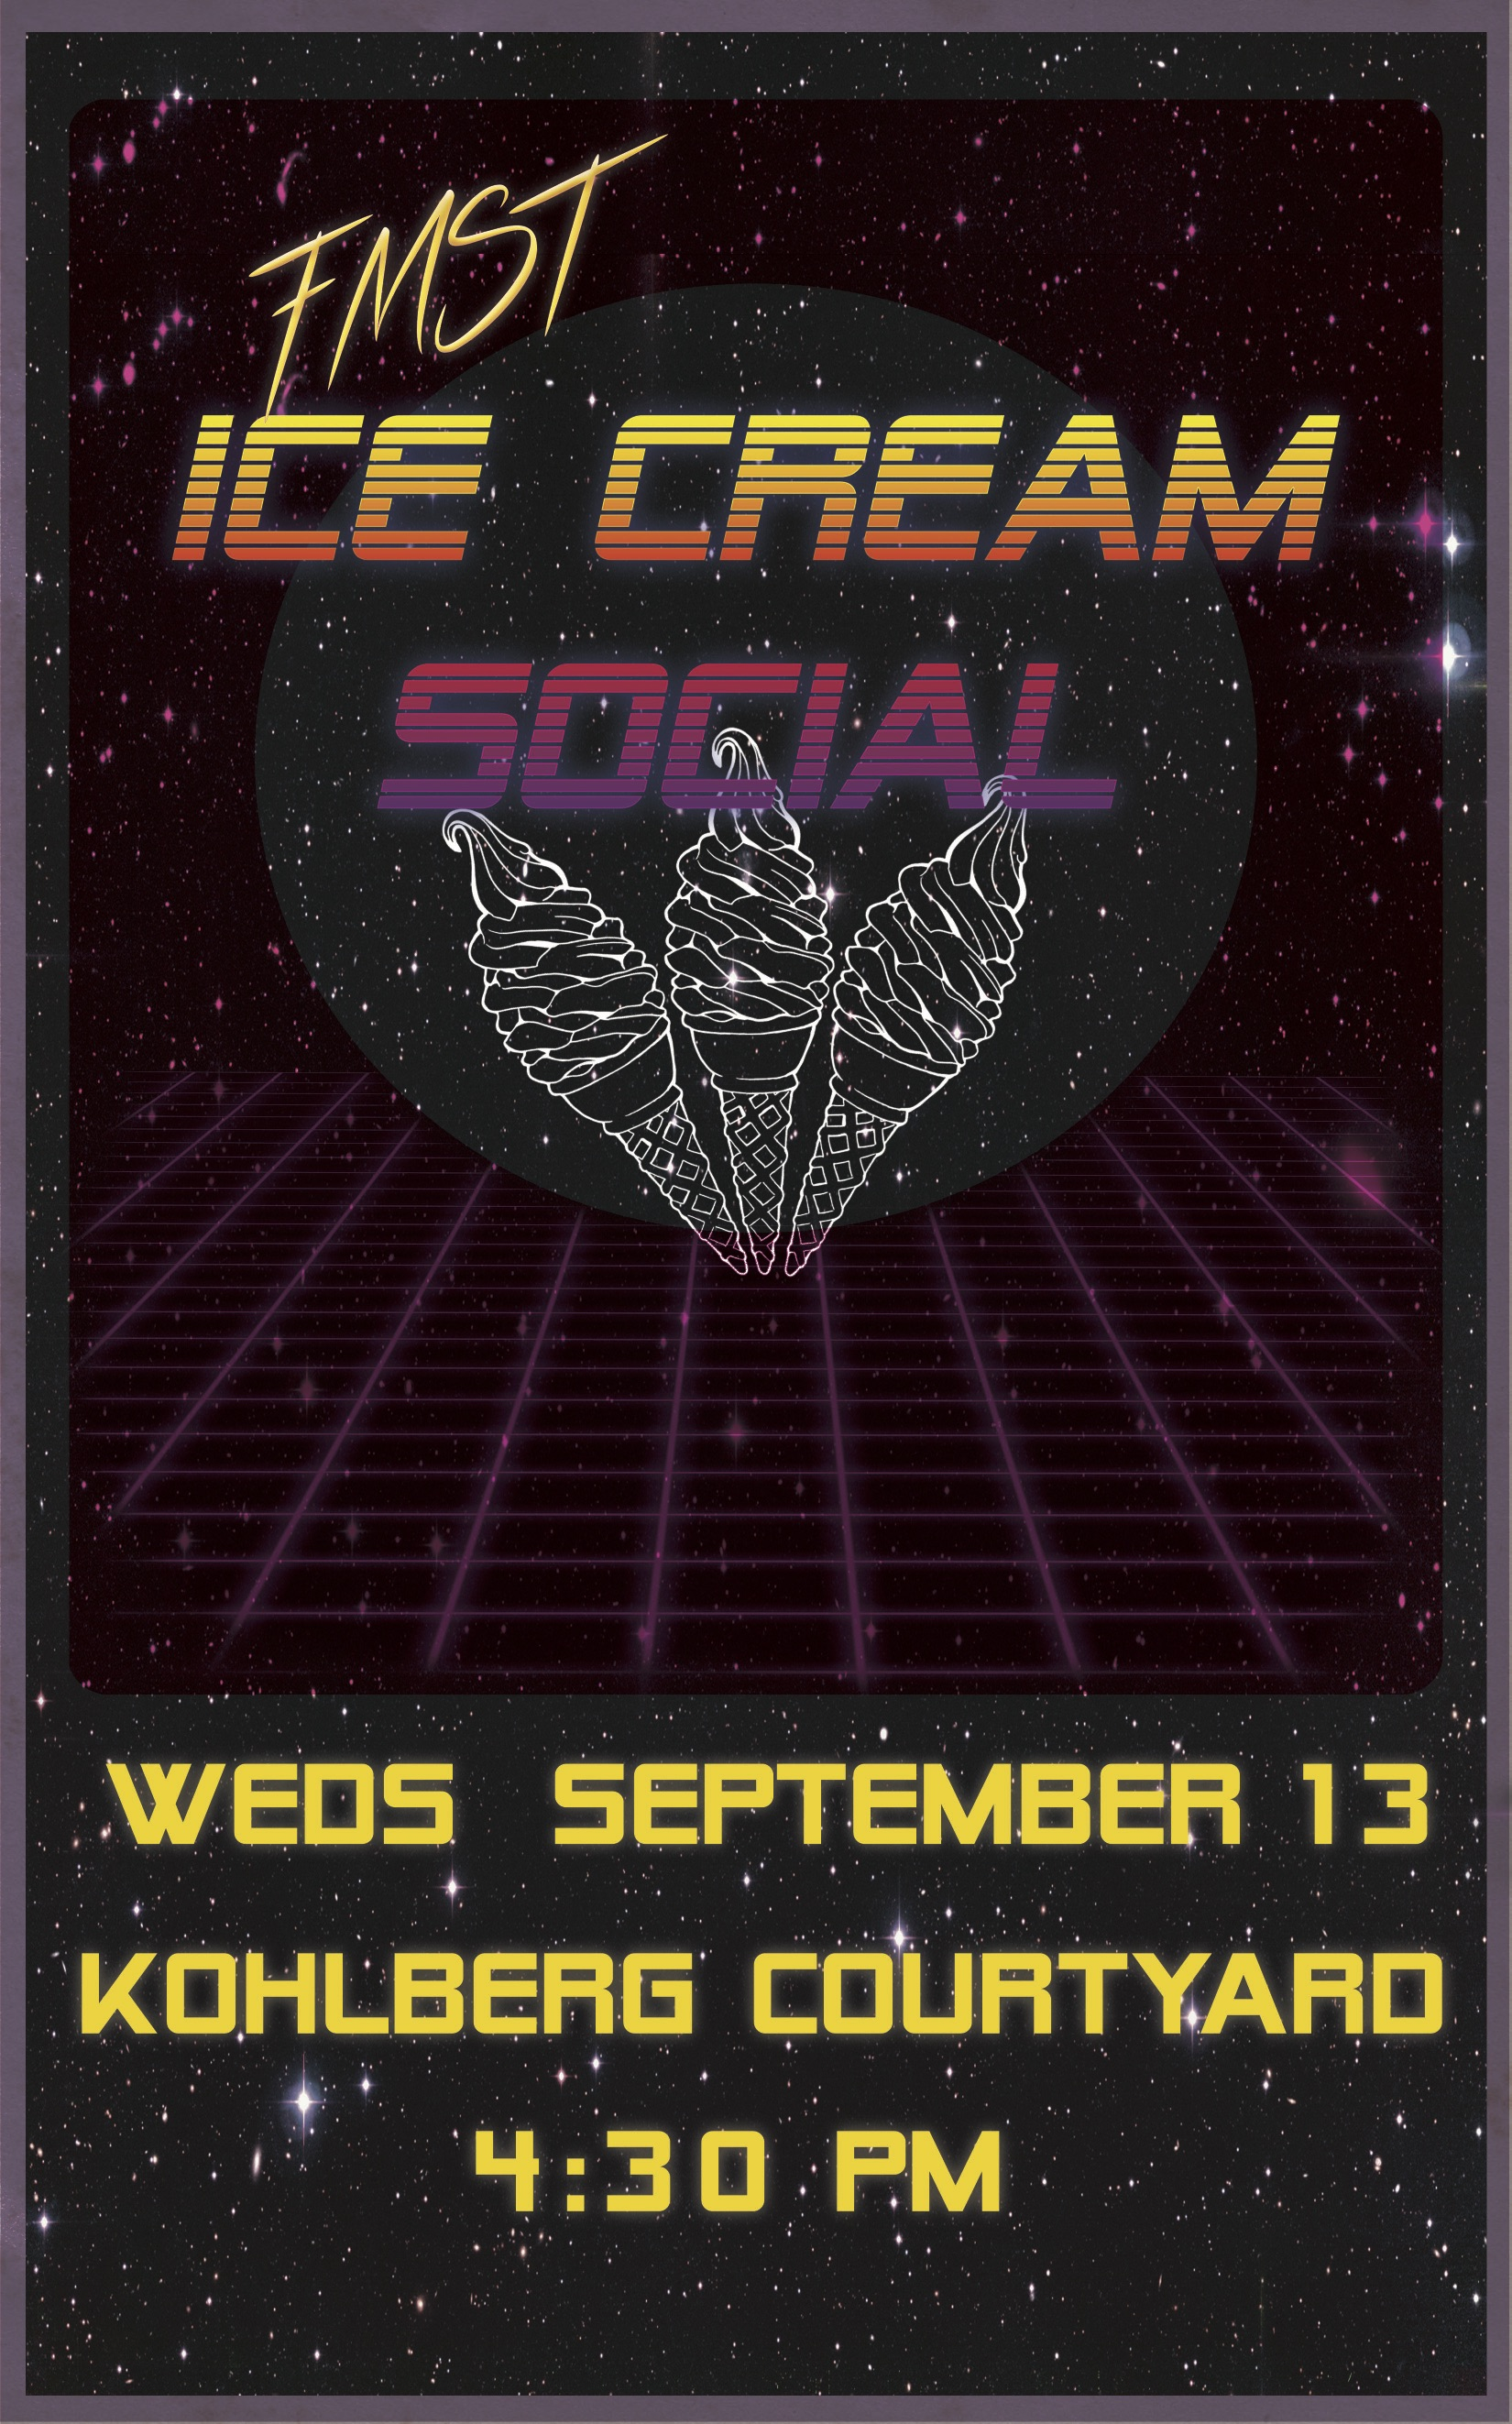 poster advertising FMST ice cream social to be held 9/13/17 at 4:30PM in Kohlberg Courtyard